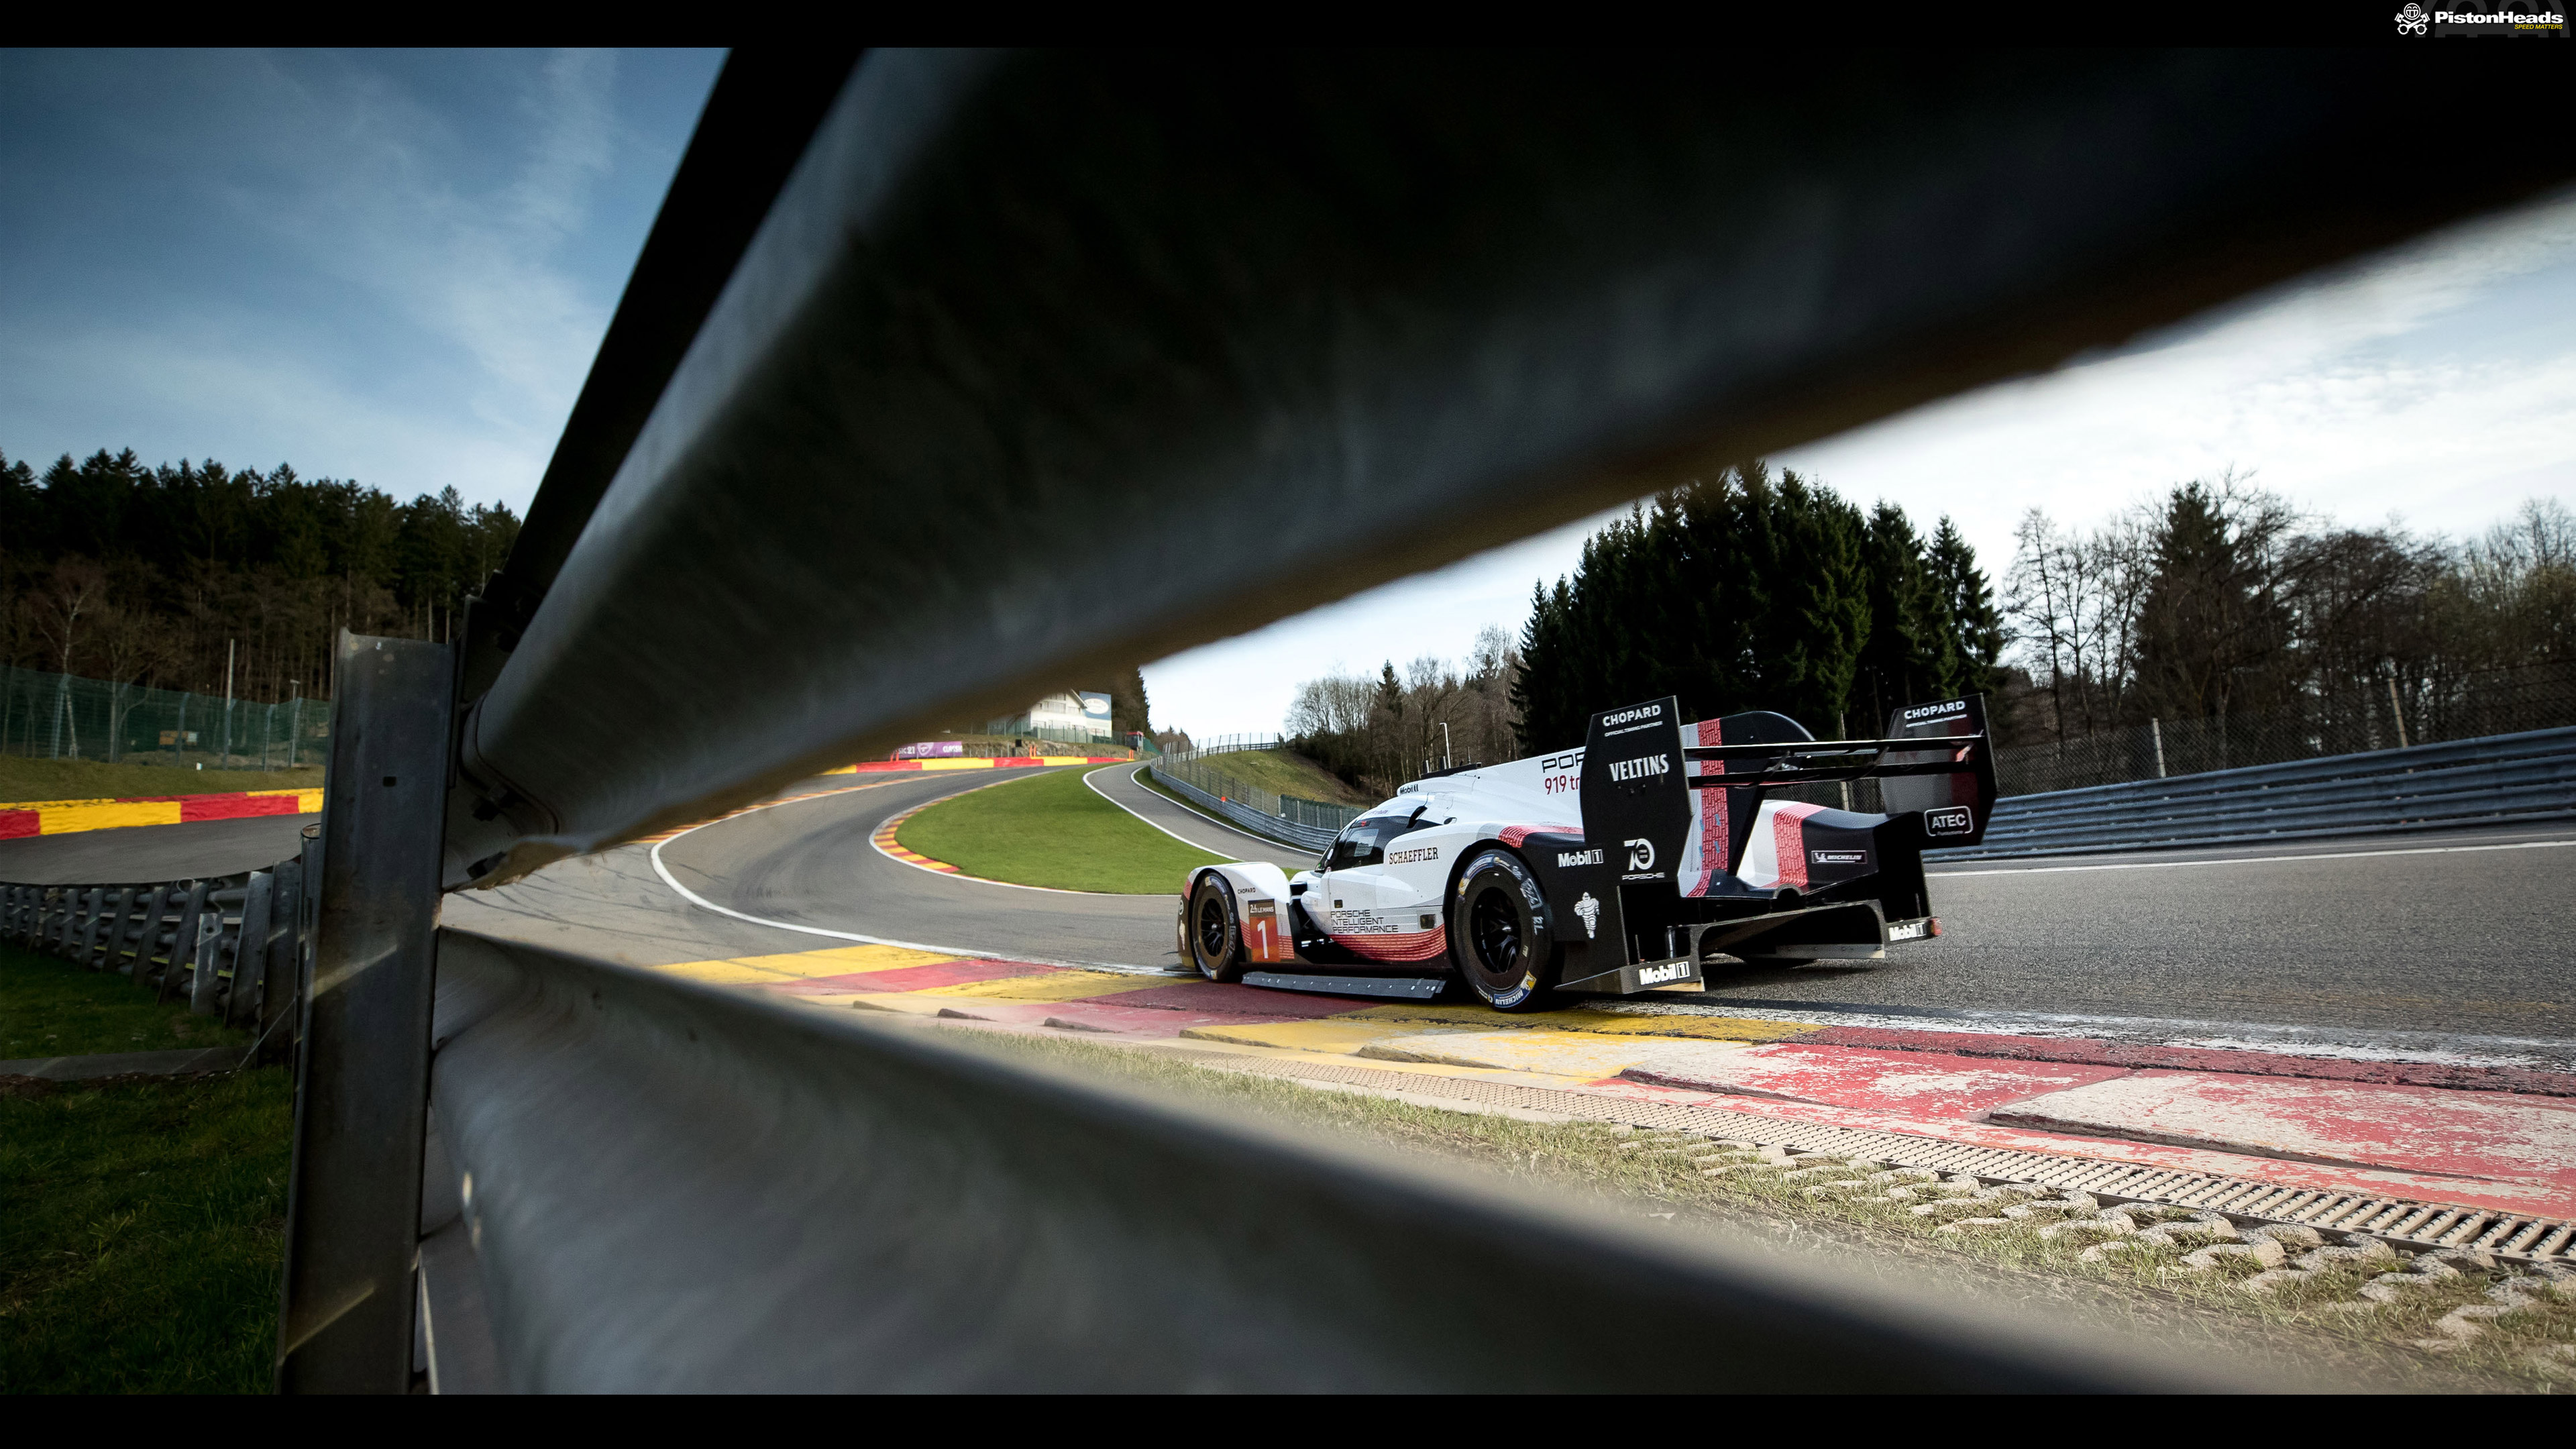 porsche 919 evo: pic of the week | pistonheads